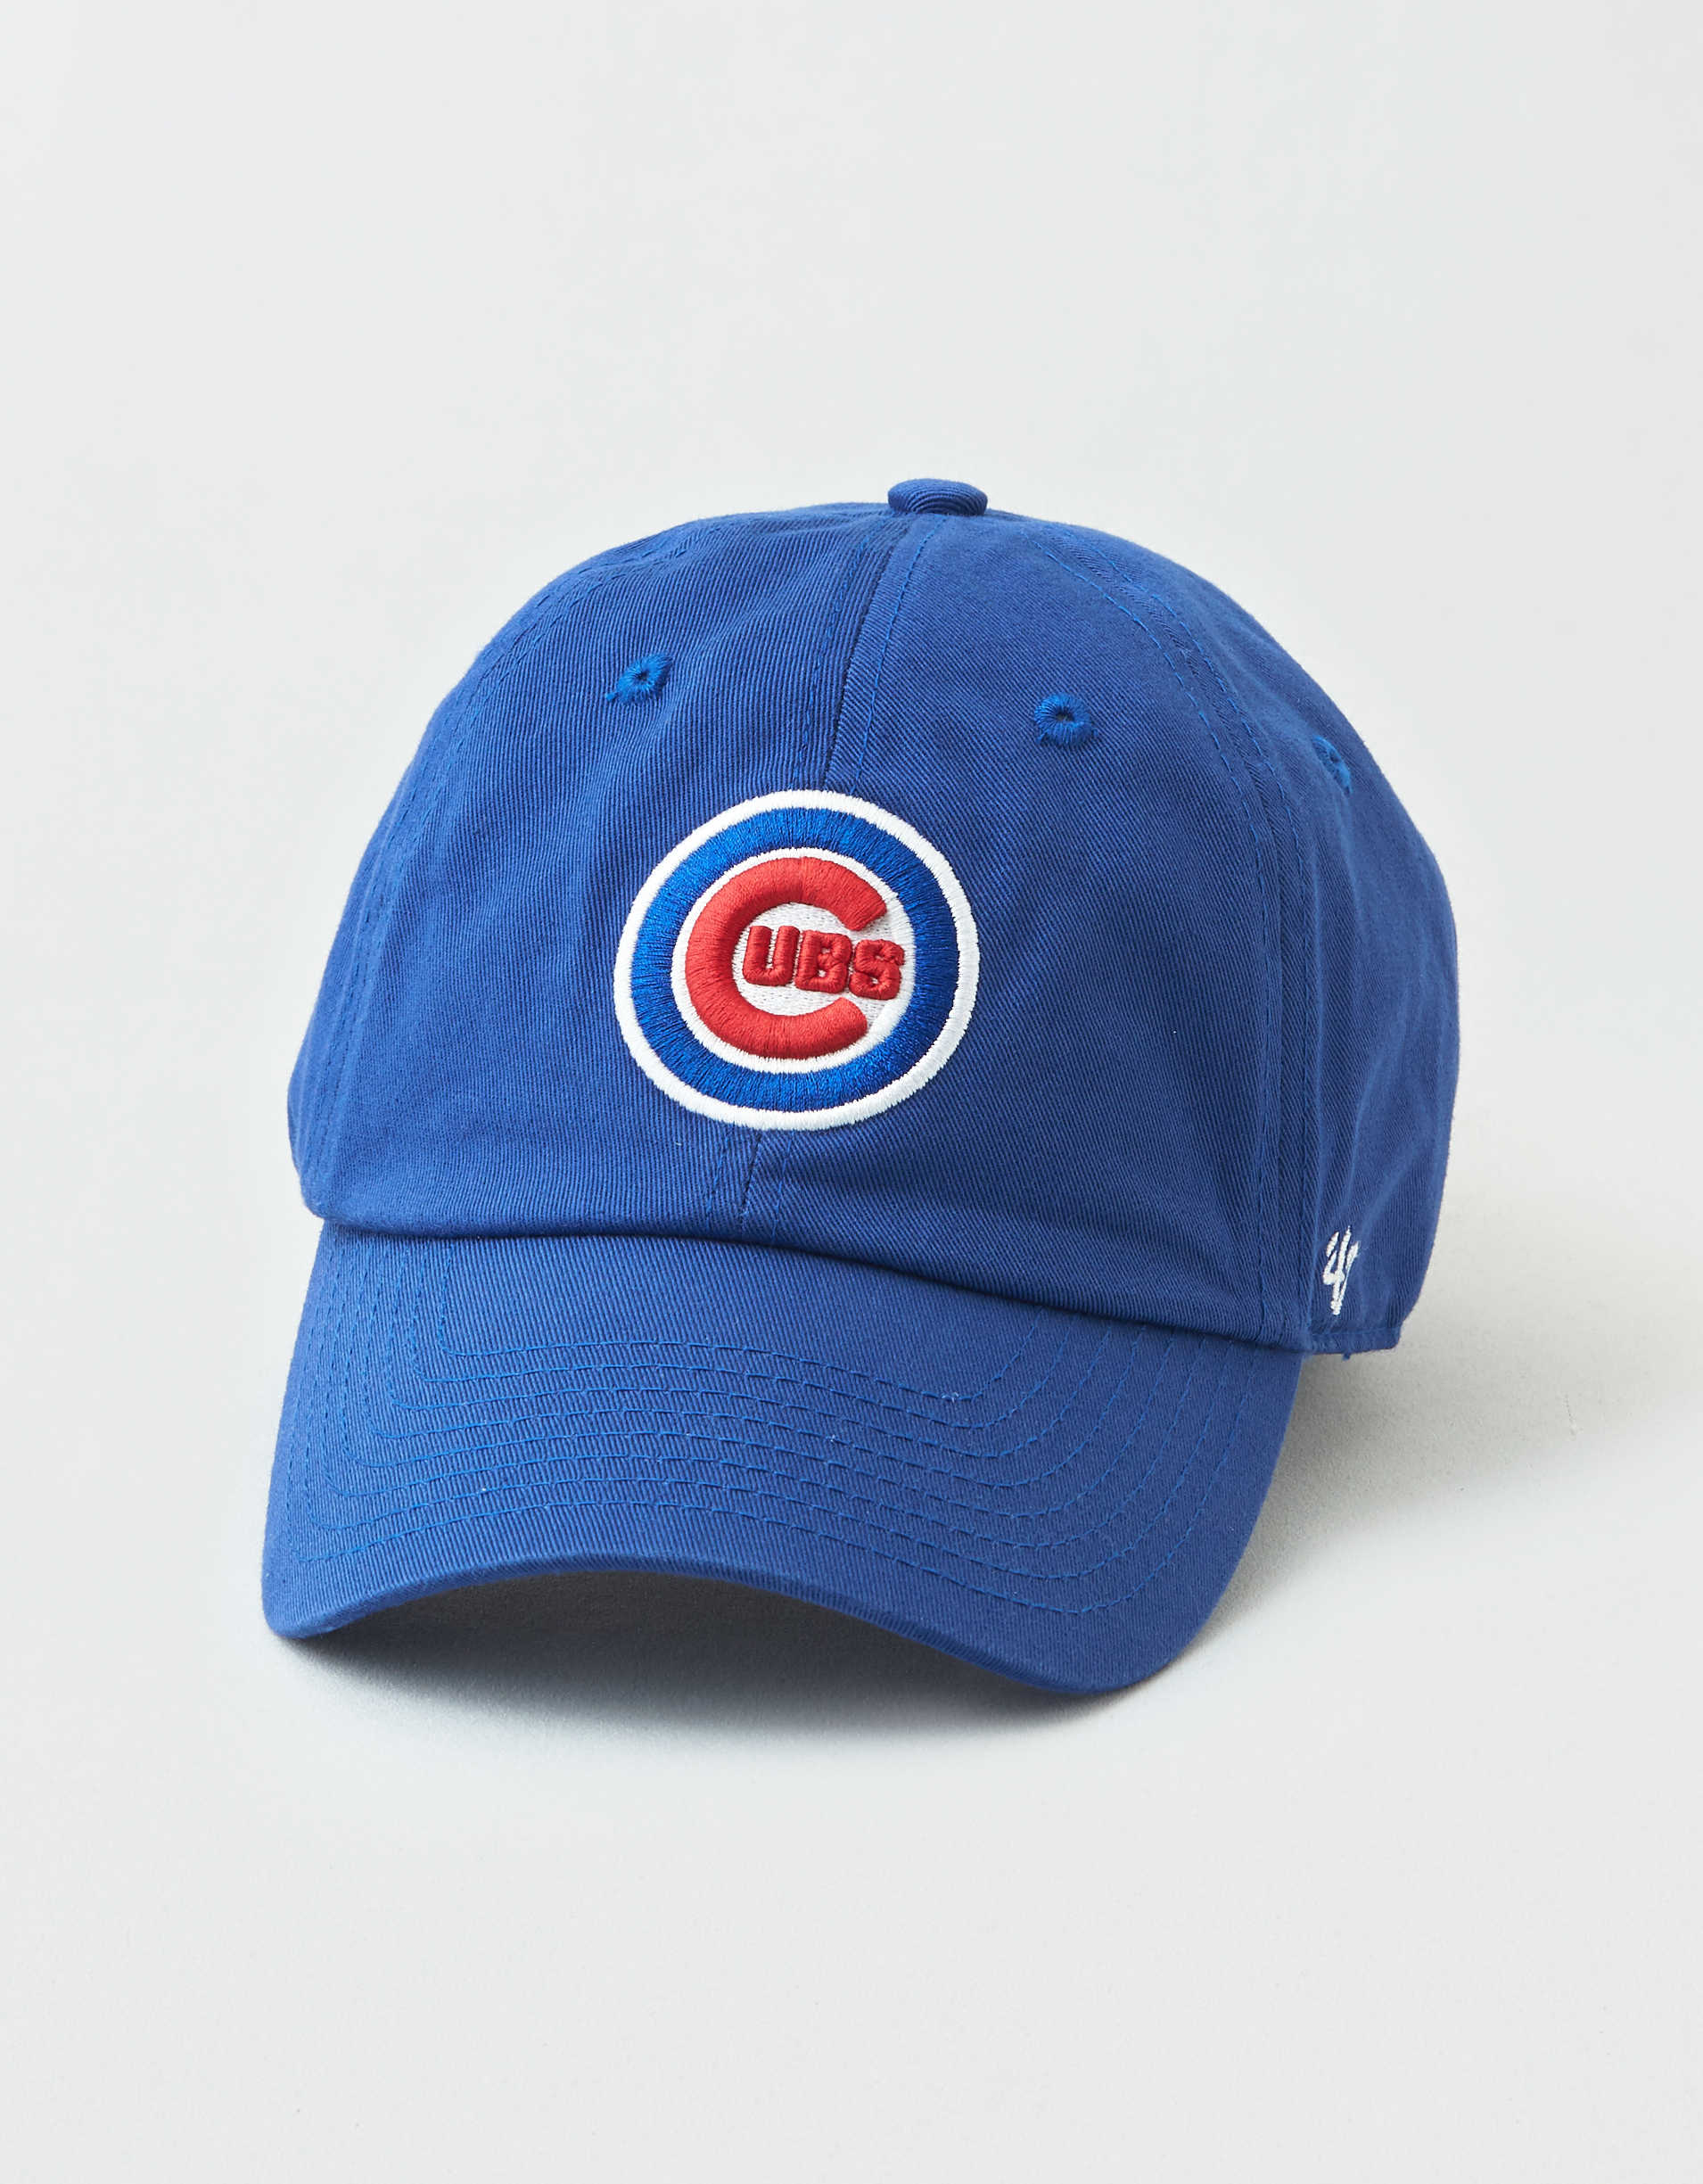 '47 Chicago Cubs Baseball Hat